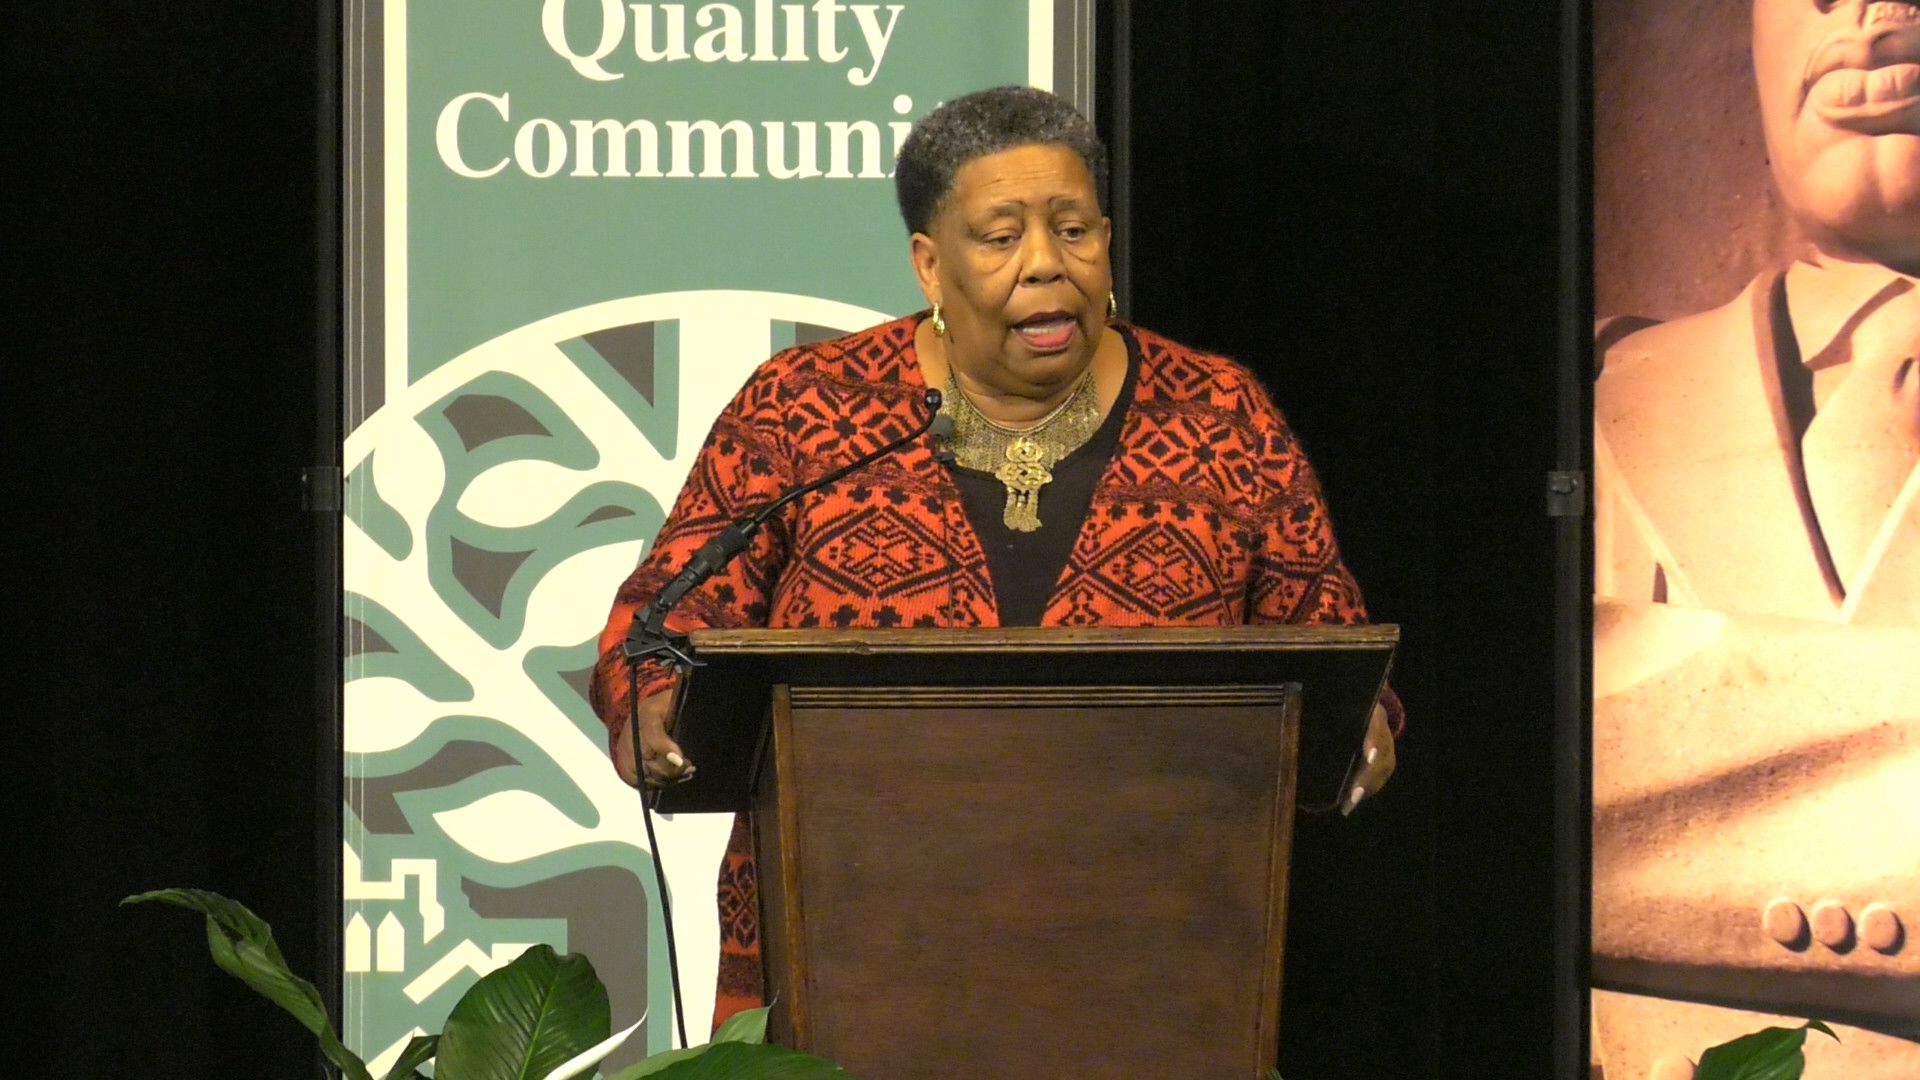 Civil Rights Icon Addresses Segregation at Event in East Lansing